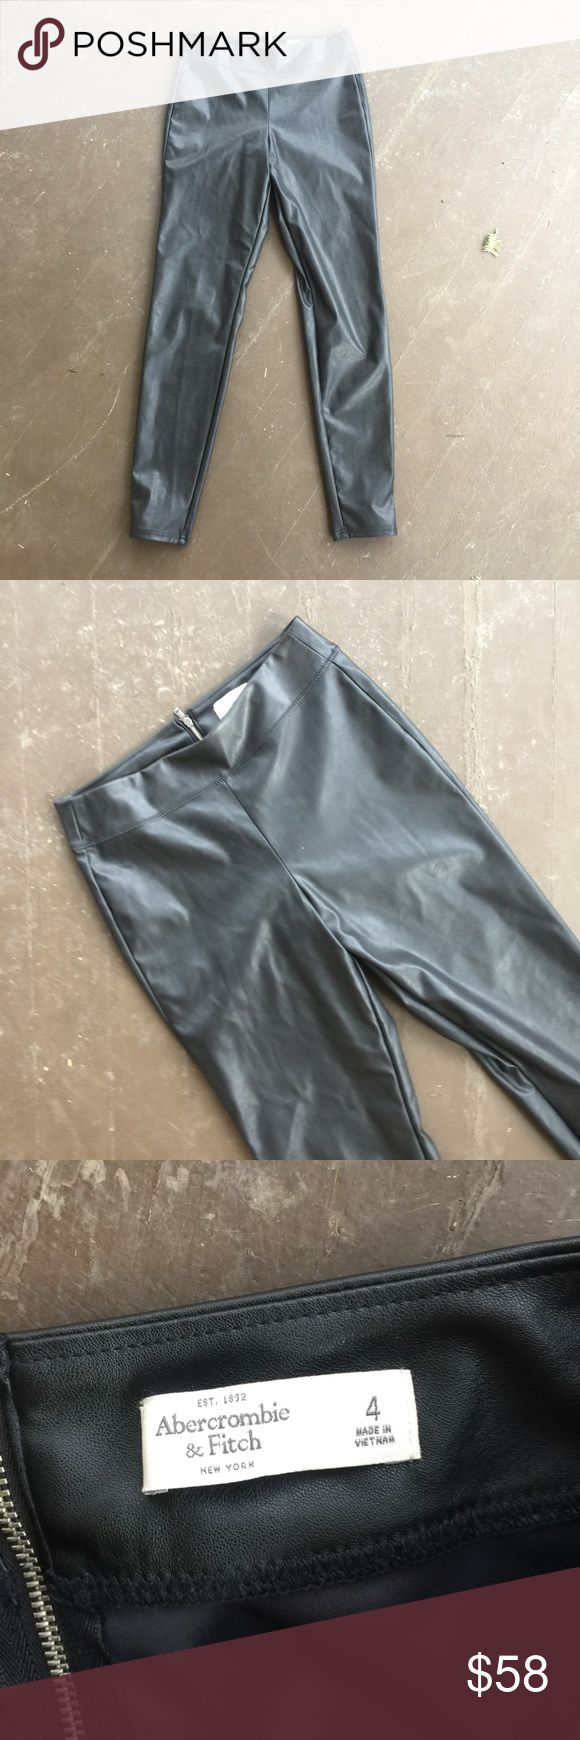 Leather Look Leggings Skinny Leg Pants Brand-new without tags Abercrombie and Fitch black leather look pants. Zipper closure. Size 4 runs true to size. No trades. Ships within 24 hours. Abercrombie & Fitch Pants Skinny